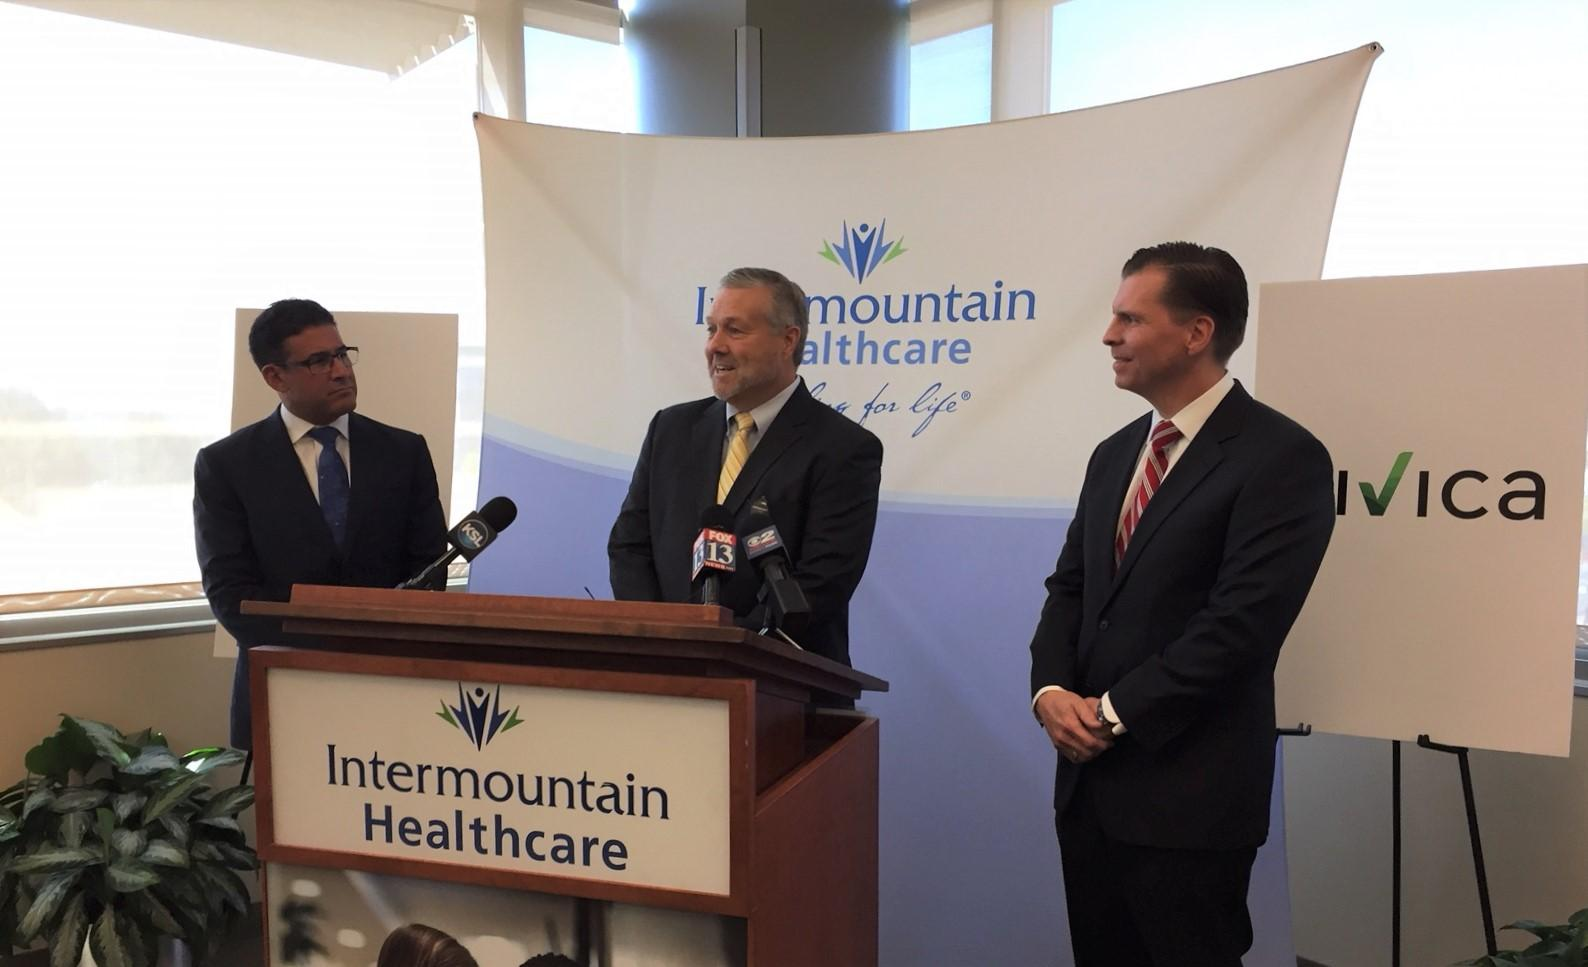 ... Harrison, Civica Rx CEO Martin VanTrieste And Intermountain Chief  Strategy Officer Dan Liljenquist Introduced The Drug Manufacturing Company  Civica Rx.